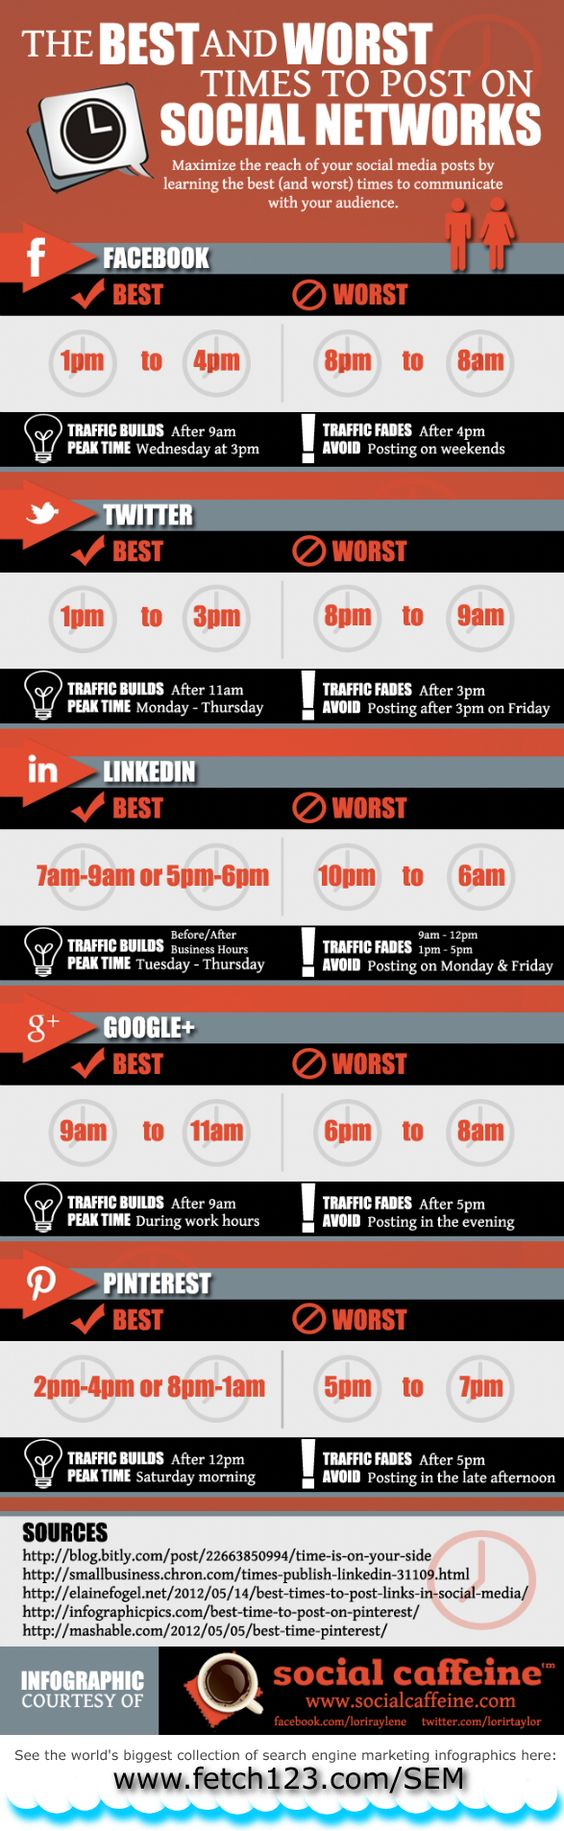 INFOGRAPHIC - The Best (And Worst) Times To Post To Twitter, Facebook, Pinterest, And Google+